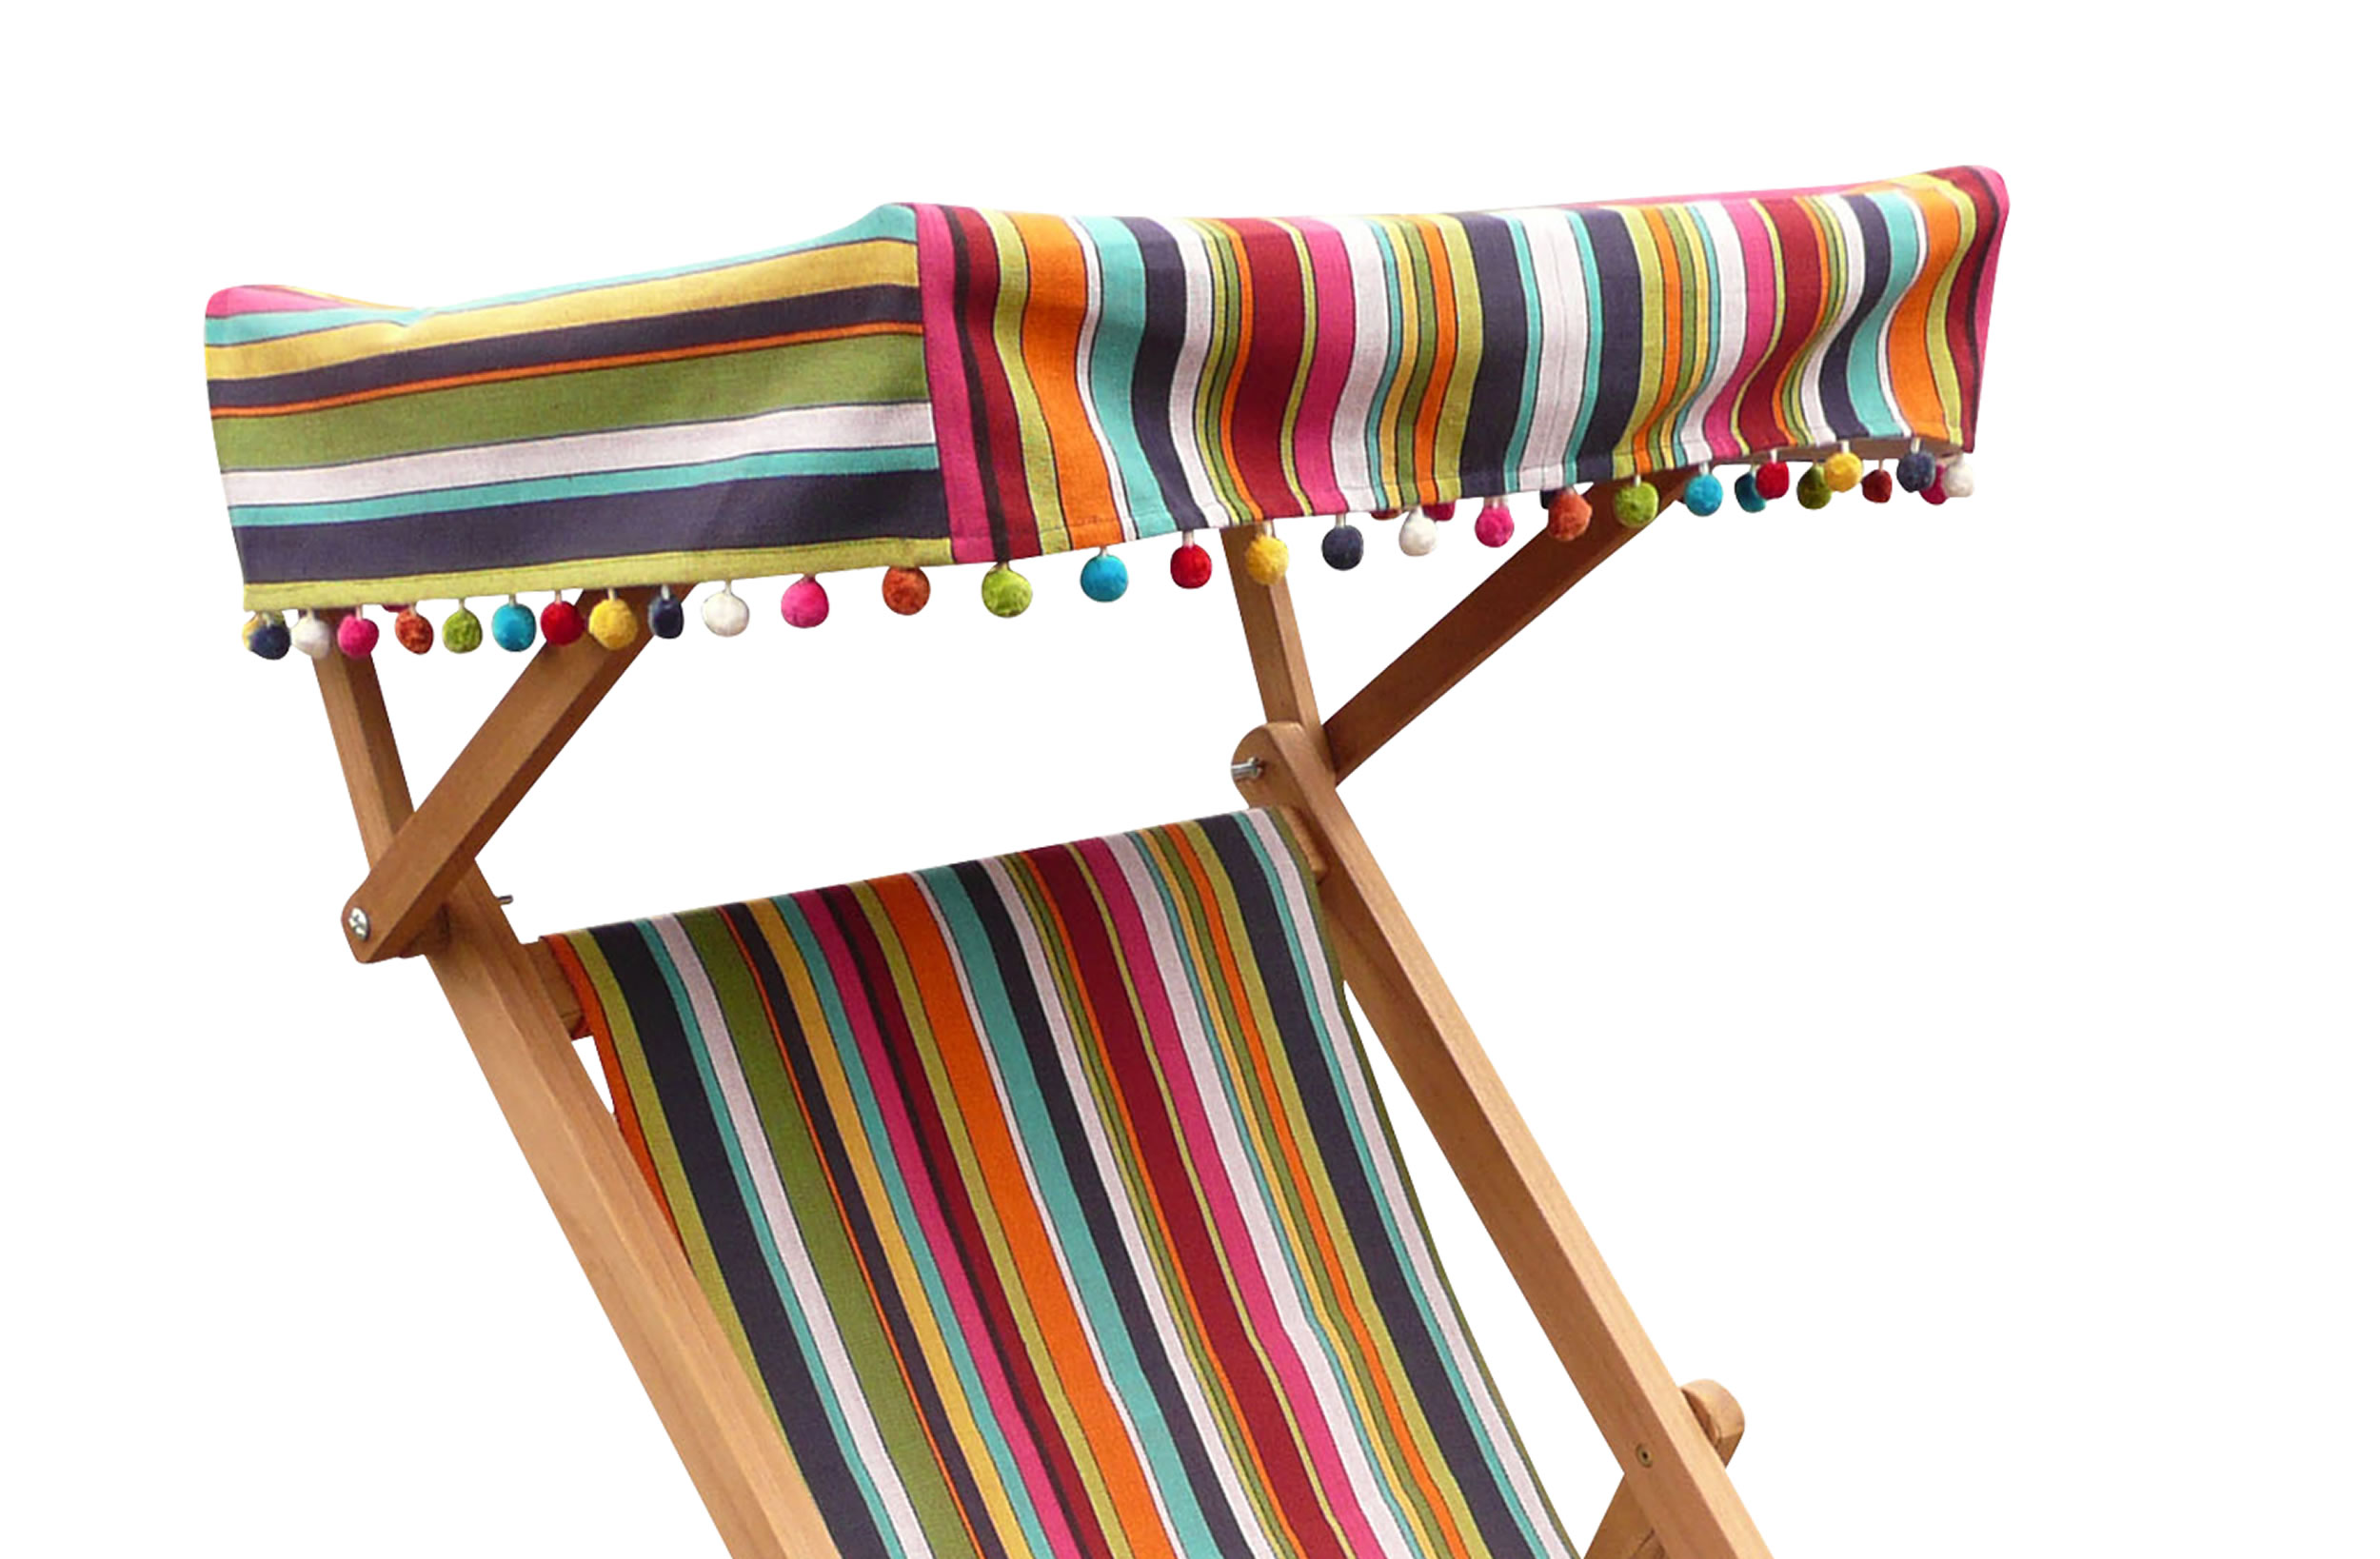 Deck chair with sun canopy. NEXT IMAGE  sc 1 st  k--k.top & Deck chair with sun canopy k--k.top 2019